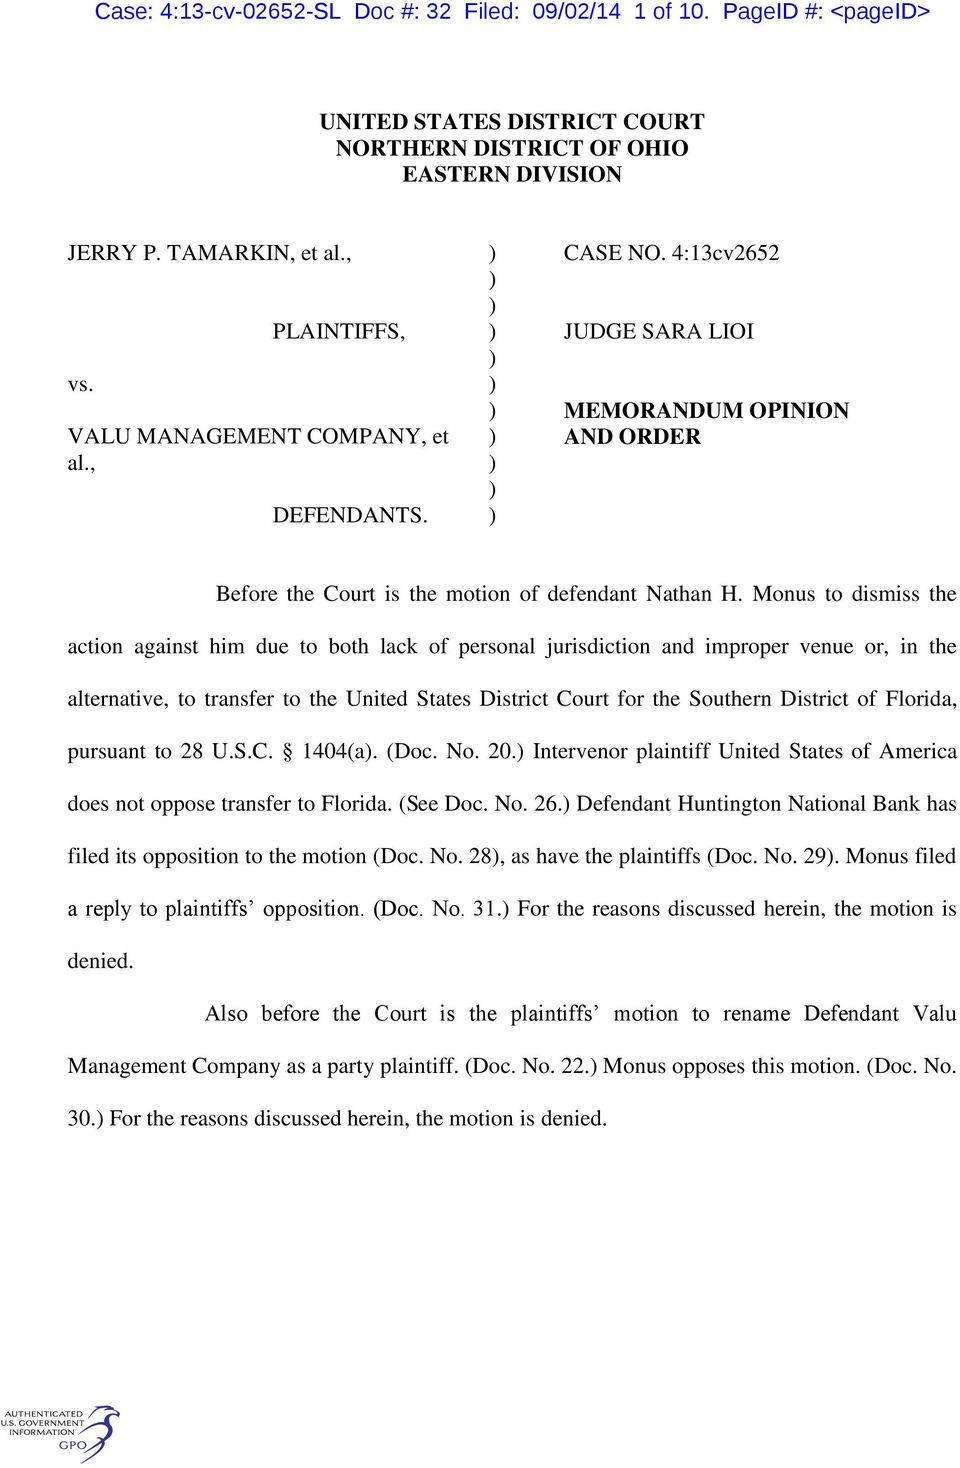 Monus to dismiss the action against him due to both lack of personal jurisdiction and improper venue or, in the alternative, to transfer to the United States District Court for the Southern District